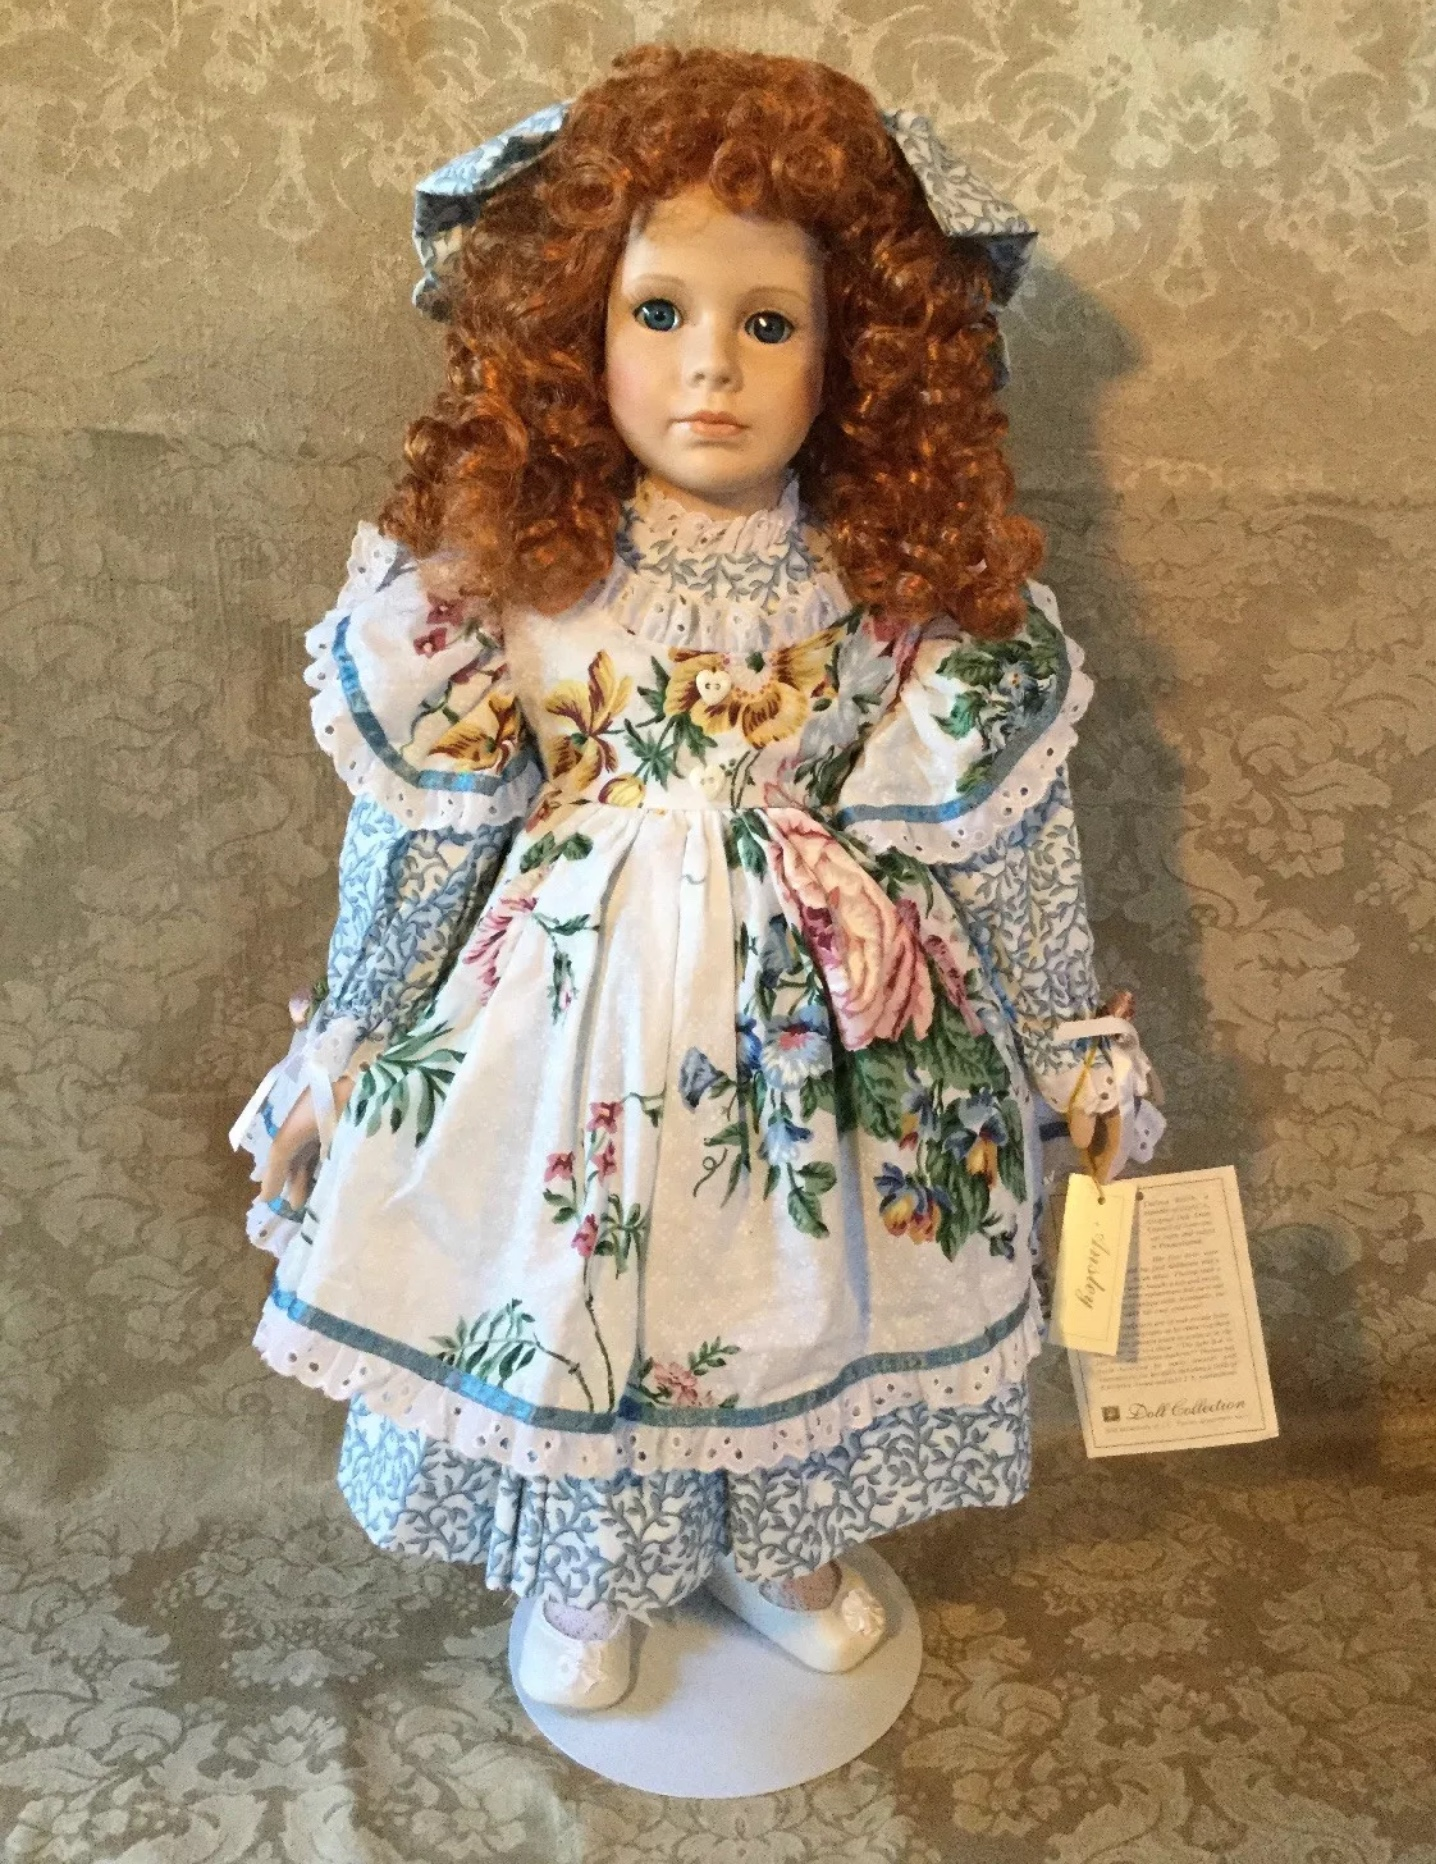 limited-edition-thelma-resch-porcelain-doll-ansley